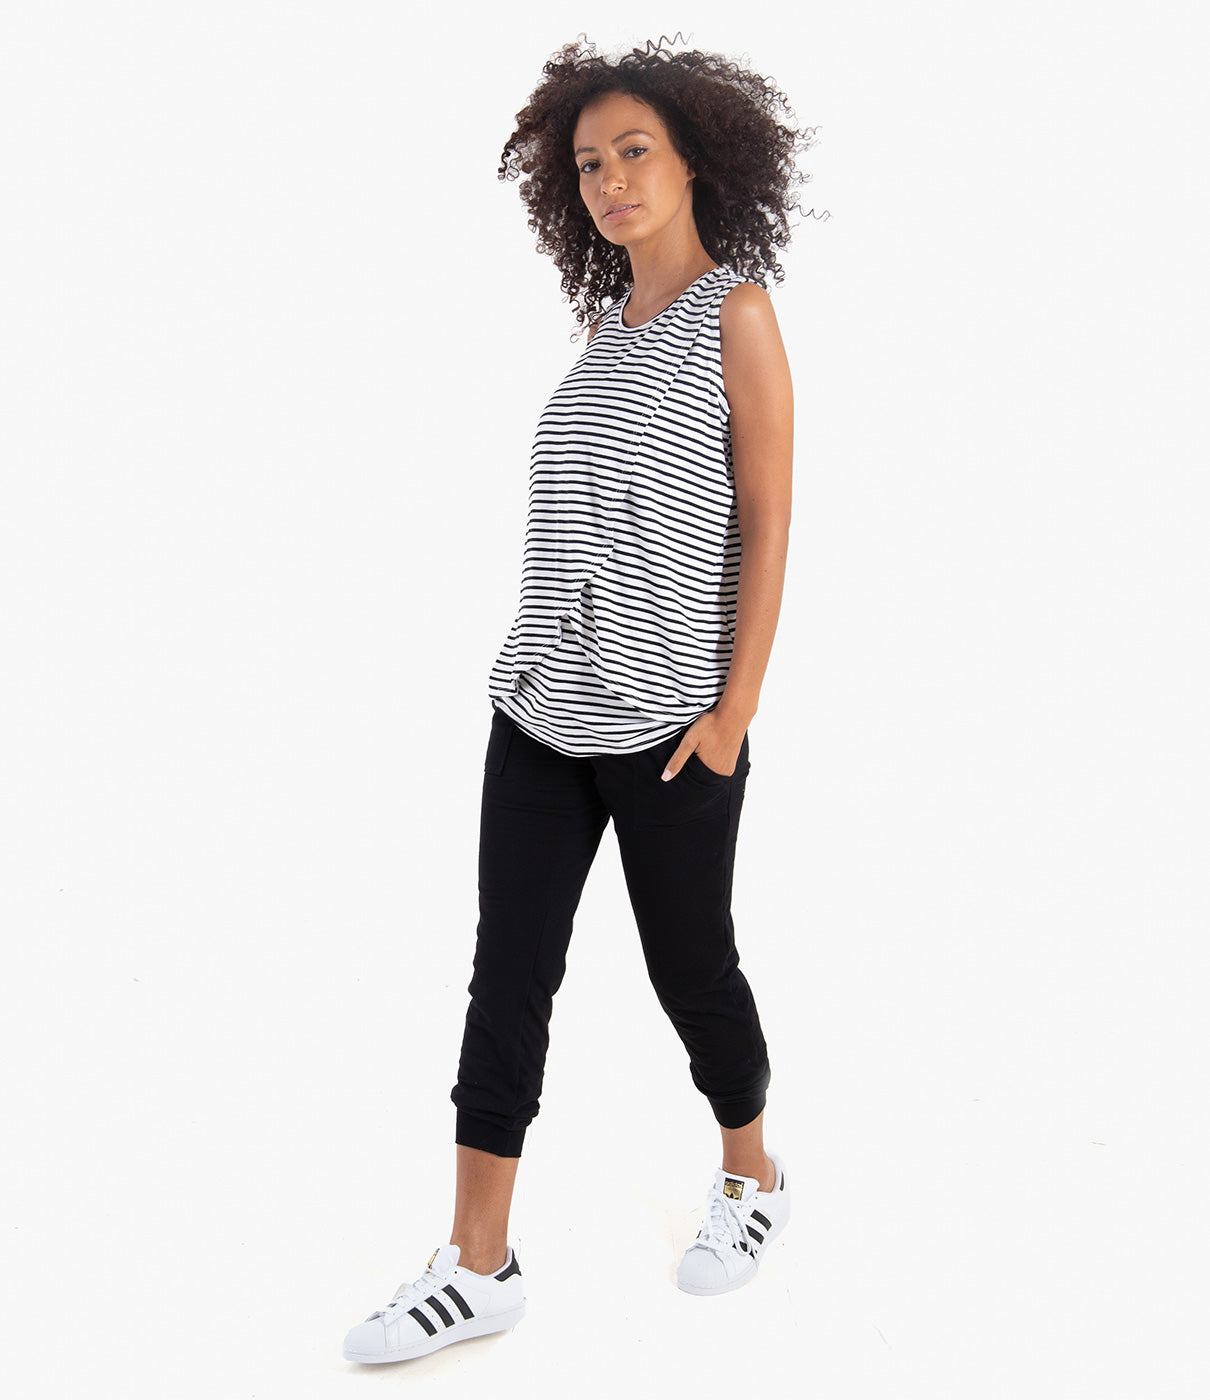 VERY VERSATILEPerfect for lounging or errands, a must-have staple for your wardrobe.